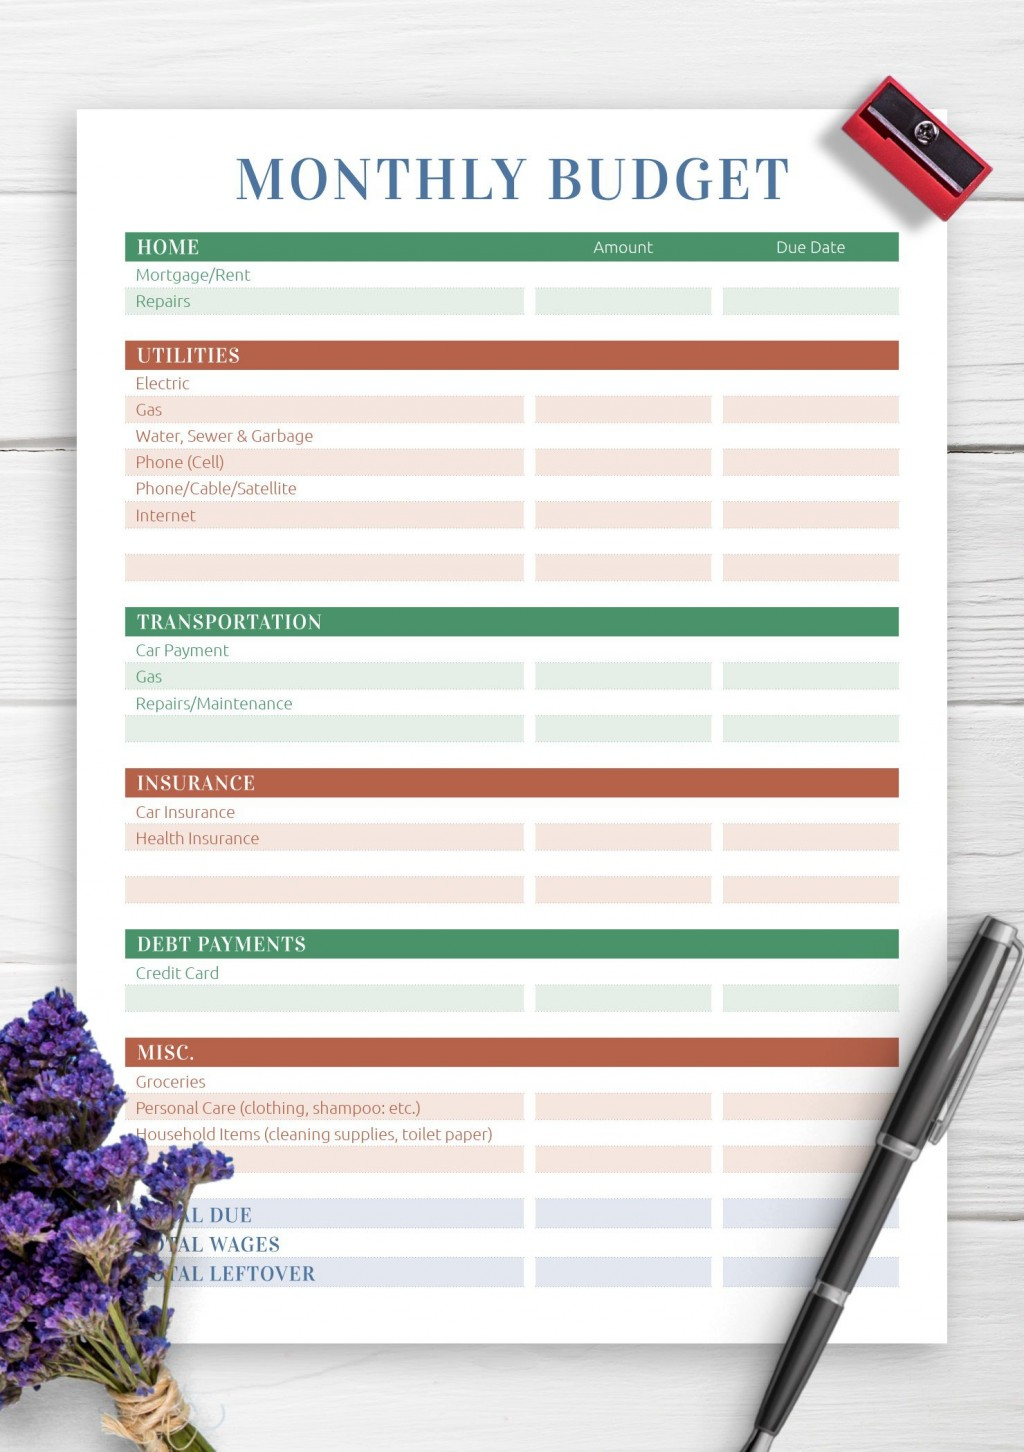 007 Marvelou Free Printable Monthly Household Budget Template Idea  ExpenseLarge